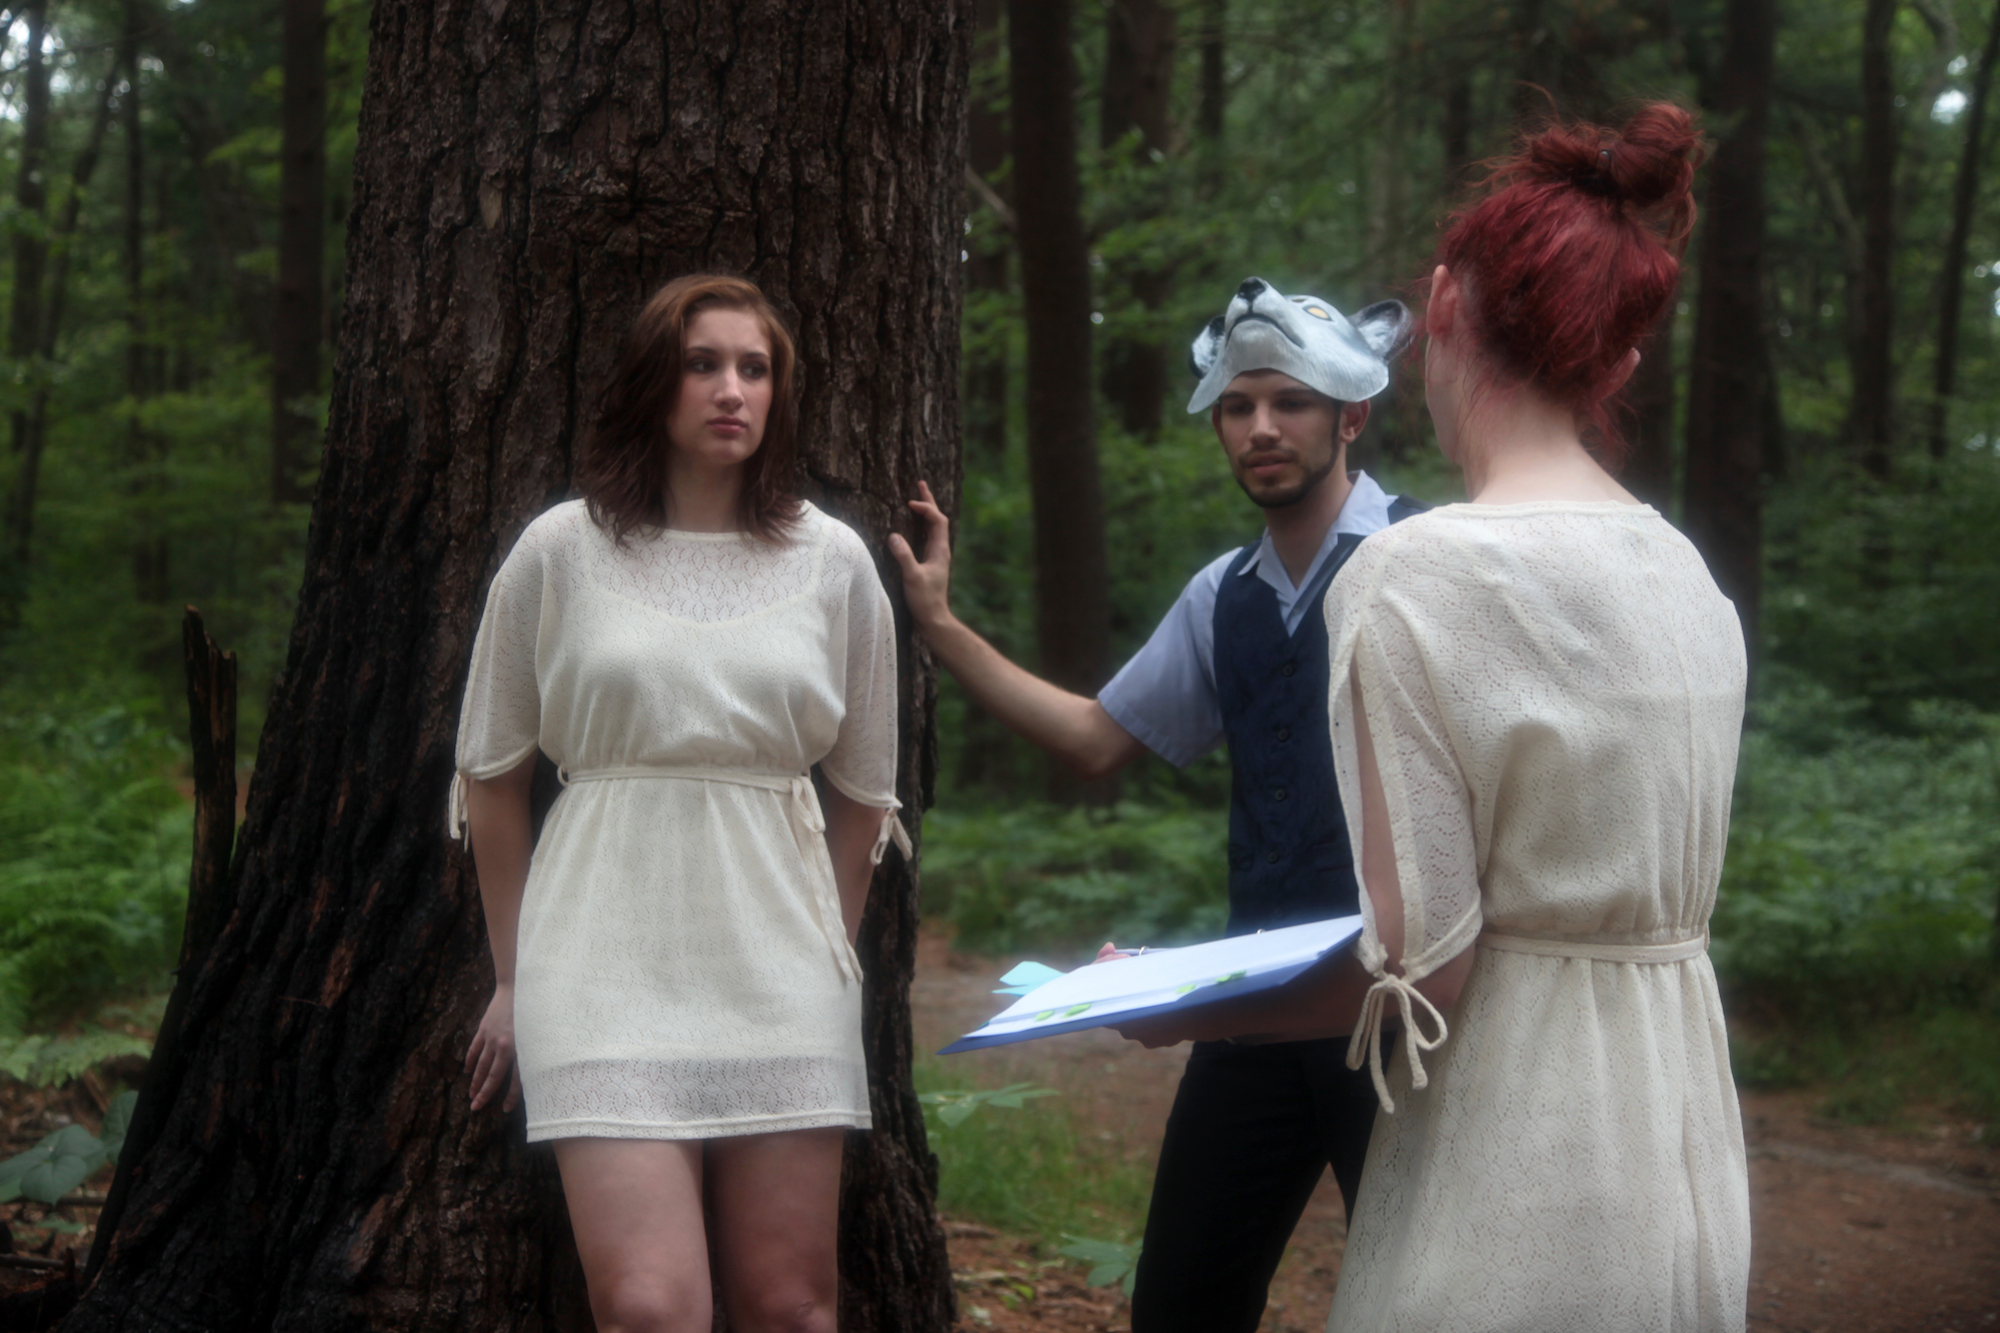 Chelsea Ross Miller and Vasilios Asimakos given direction by Geena Matuson (@geenamatuson) on the set of her thesis film 'My Big Bad Wolf', 2013.